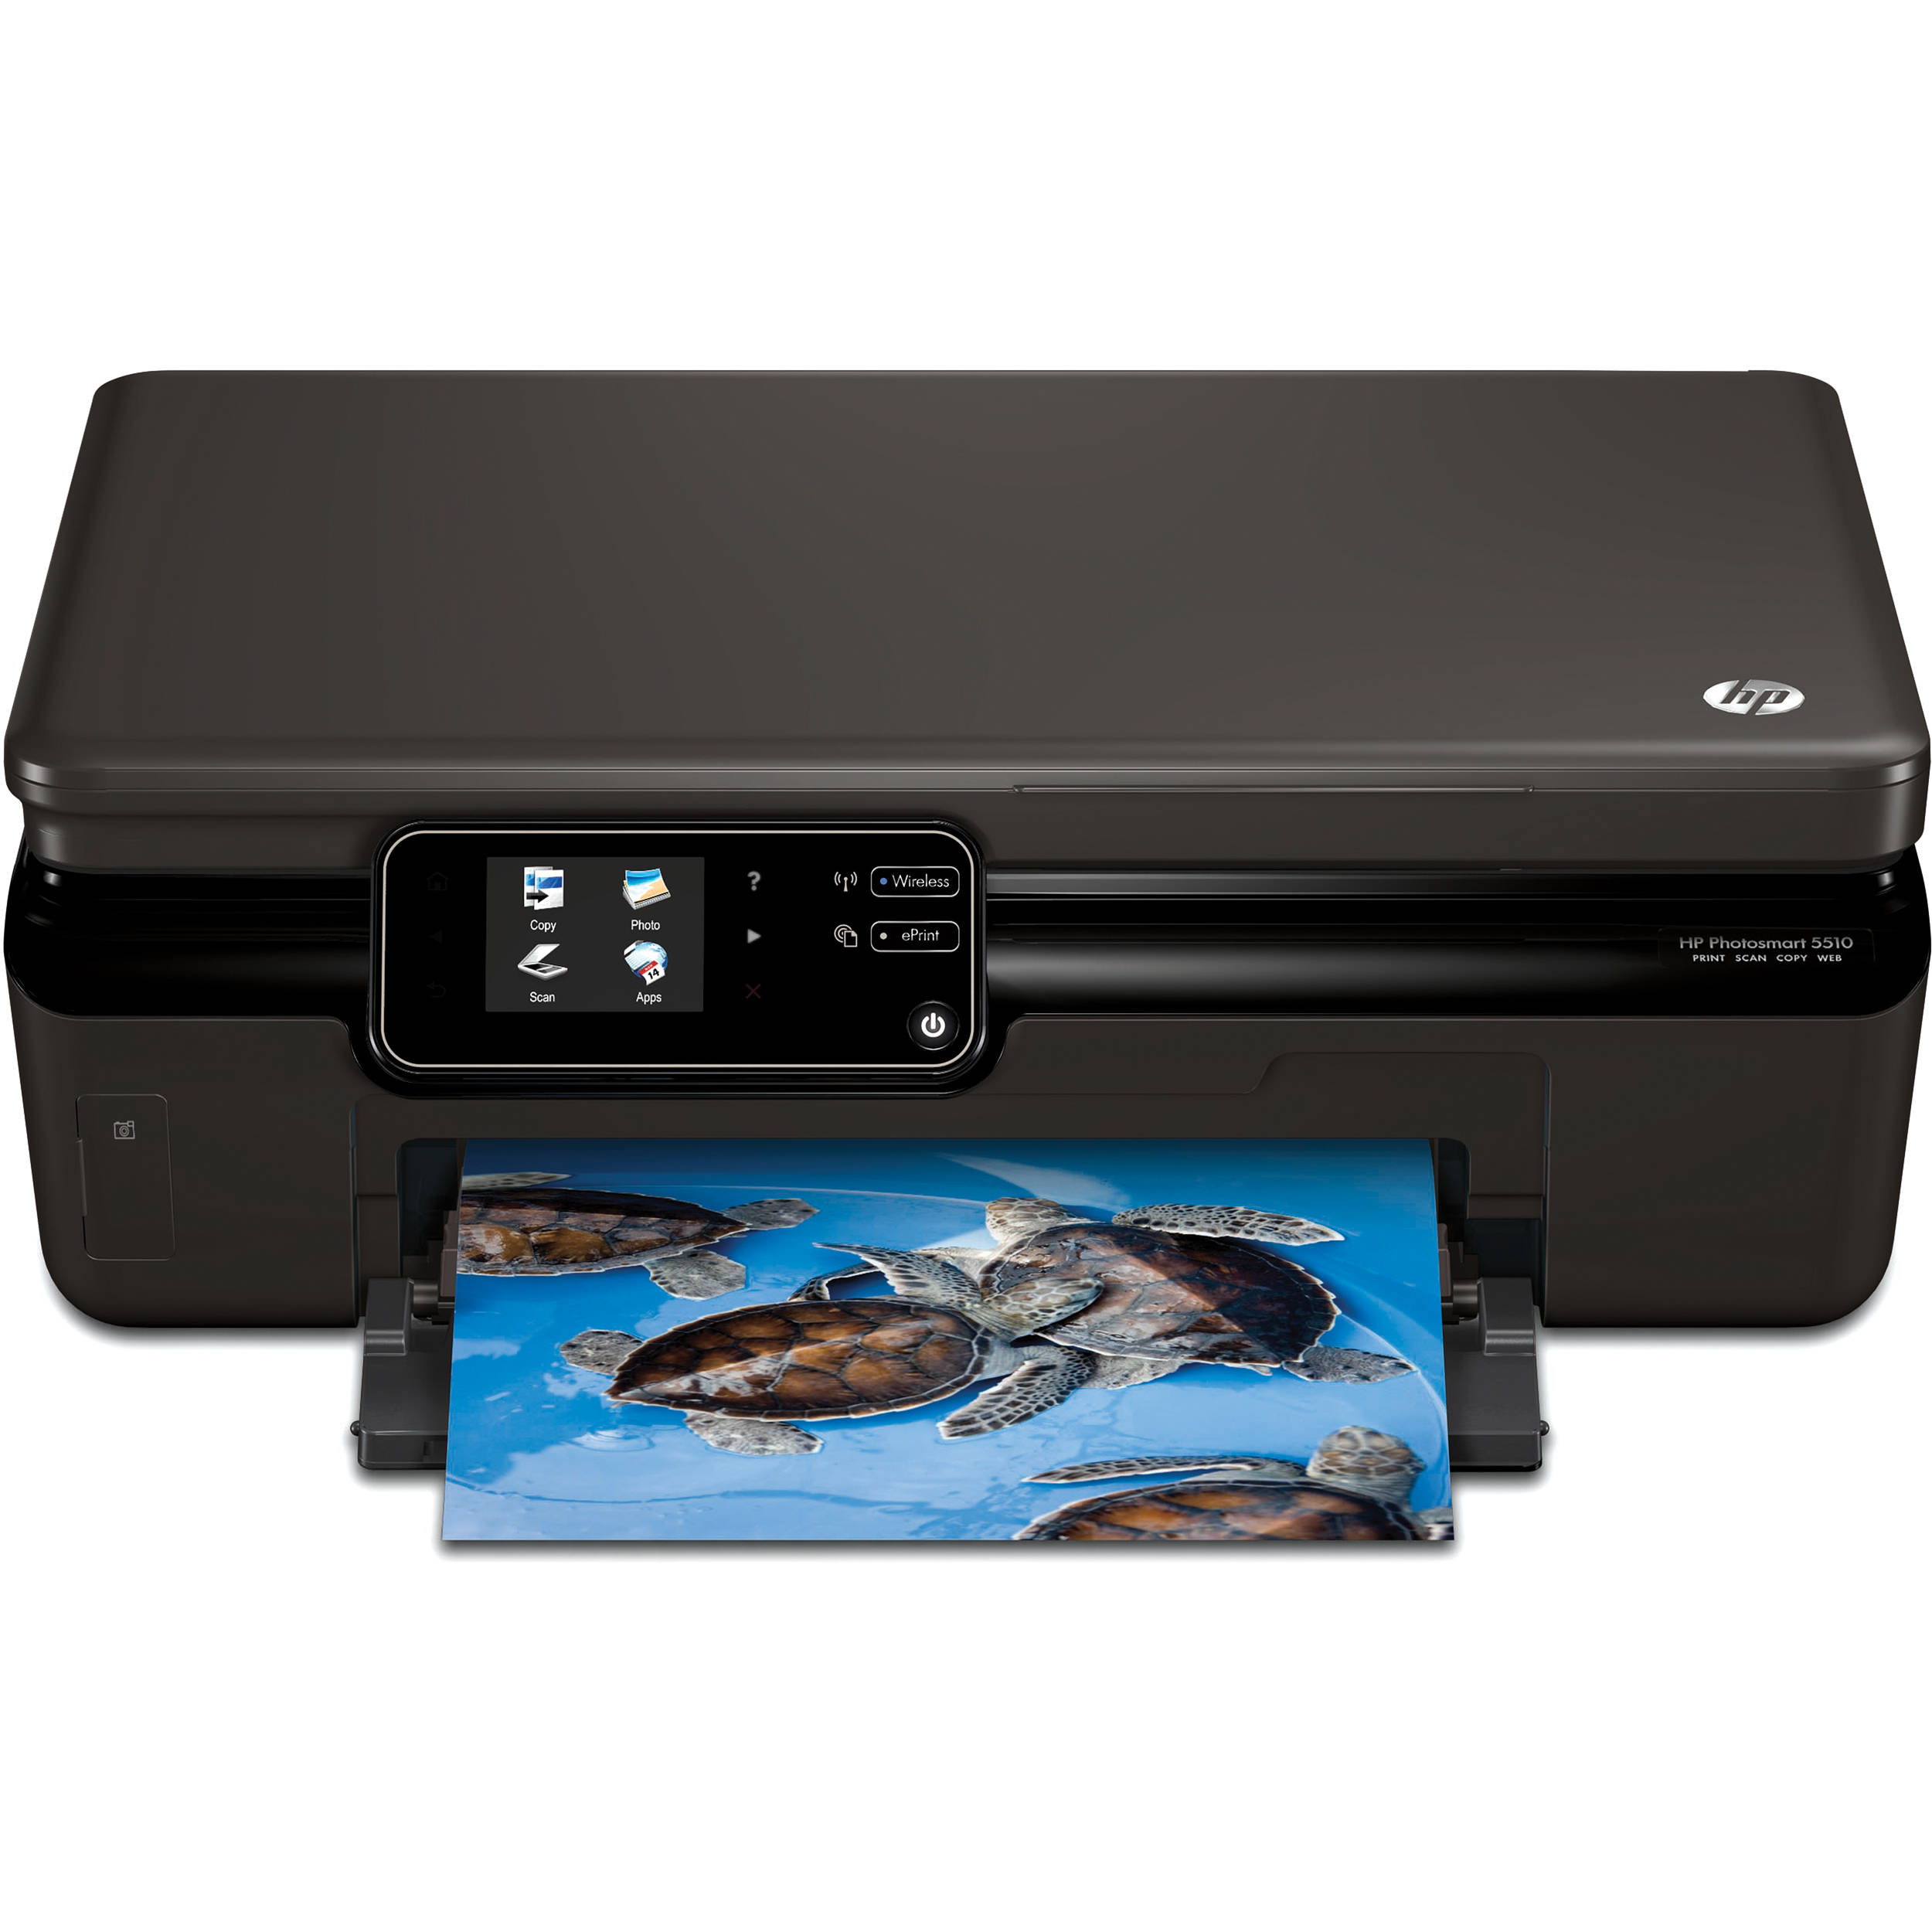 hp photosmart 5510 e all in one color inkjet printer cq176a b1h rh bhphotovideo com photosmart 5510 user manual photosmart 5510 user manual